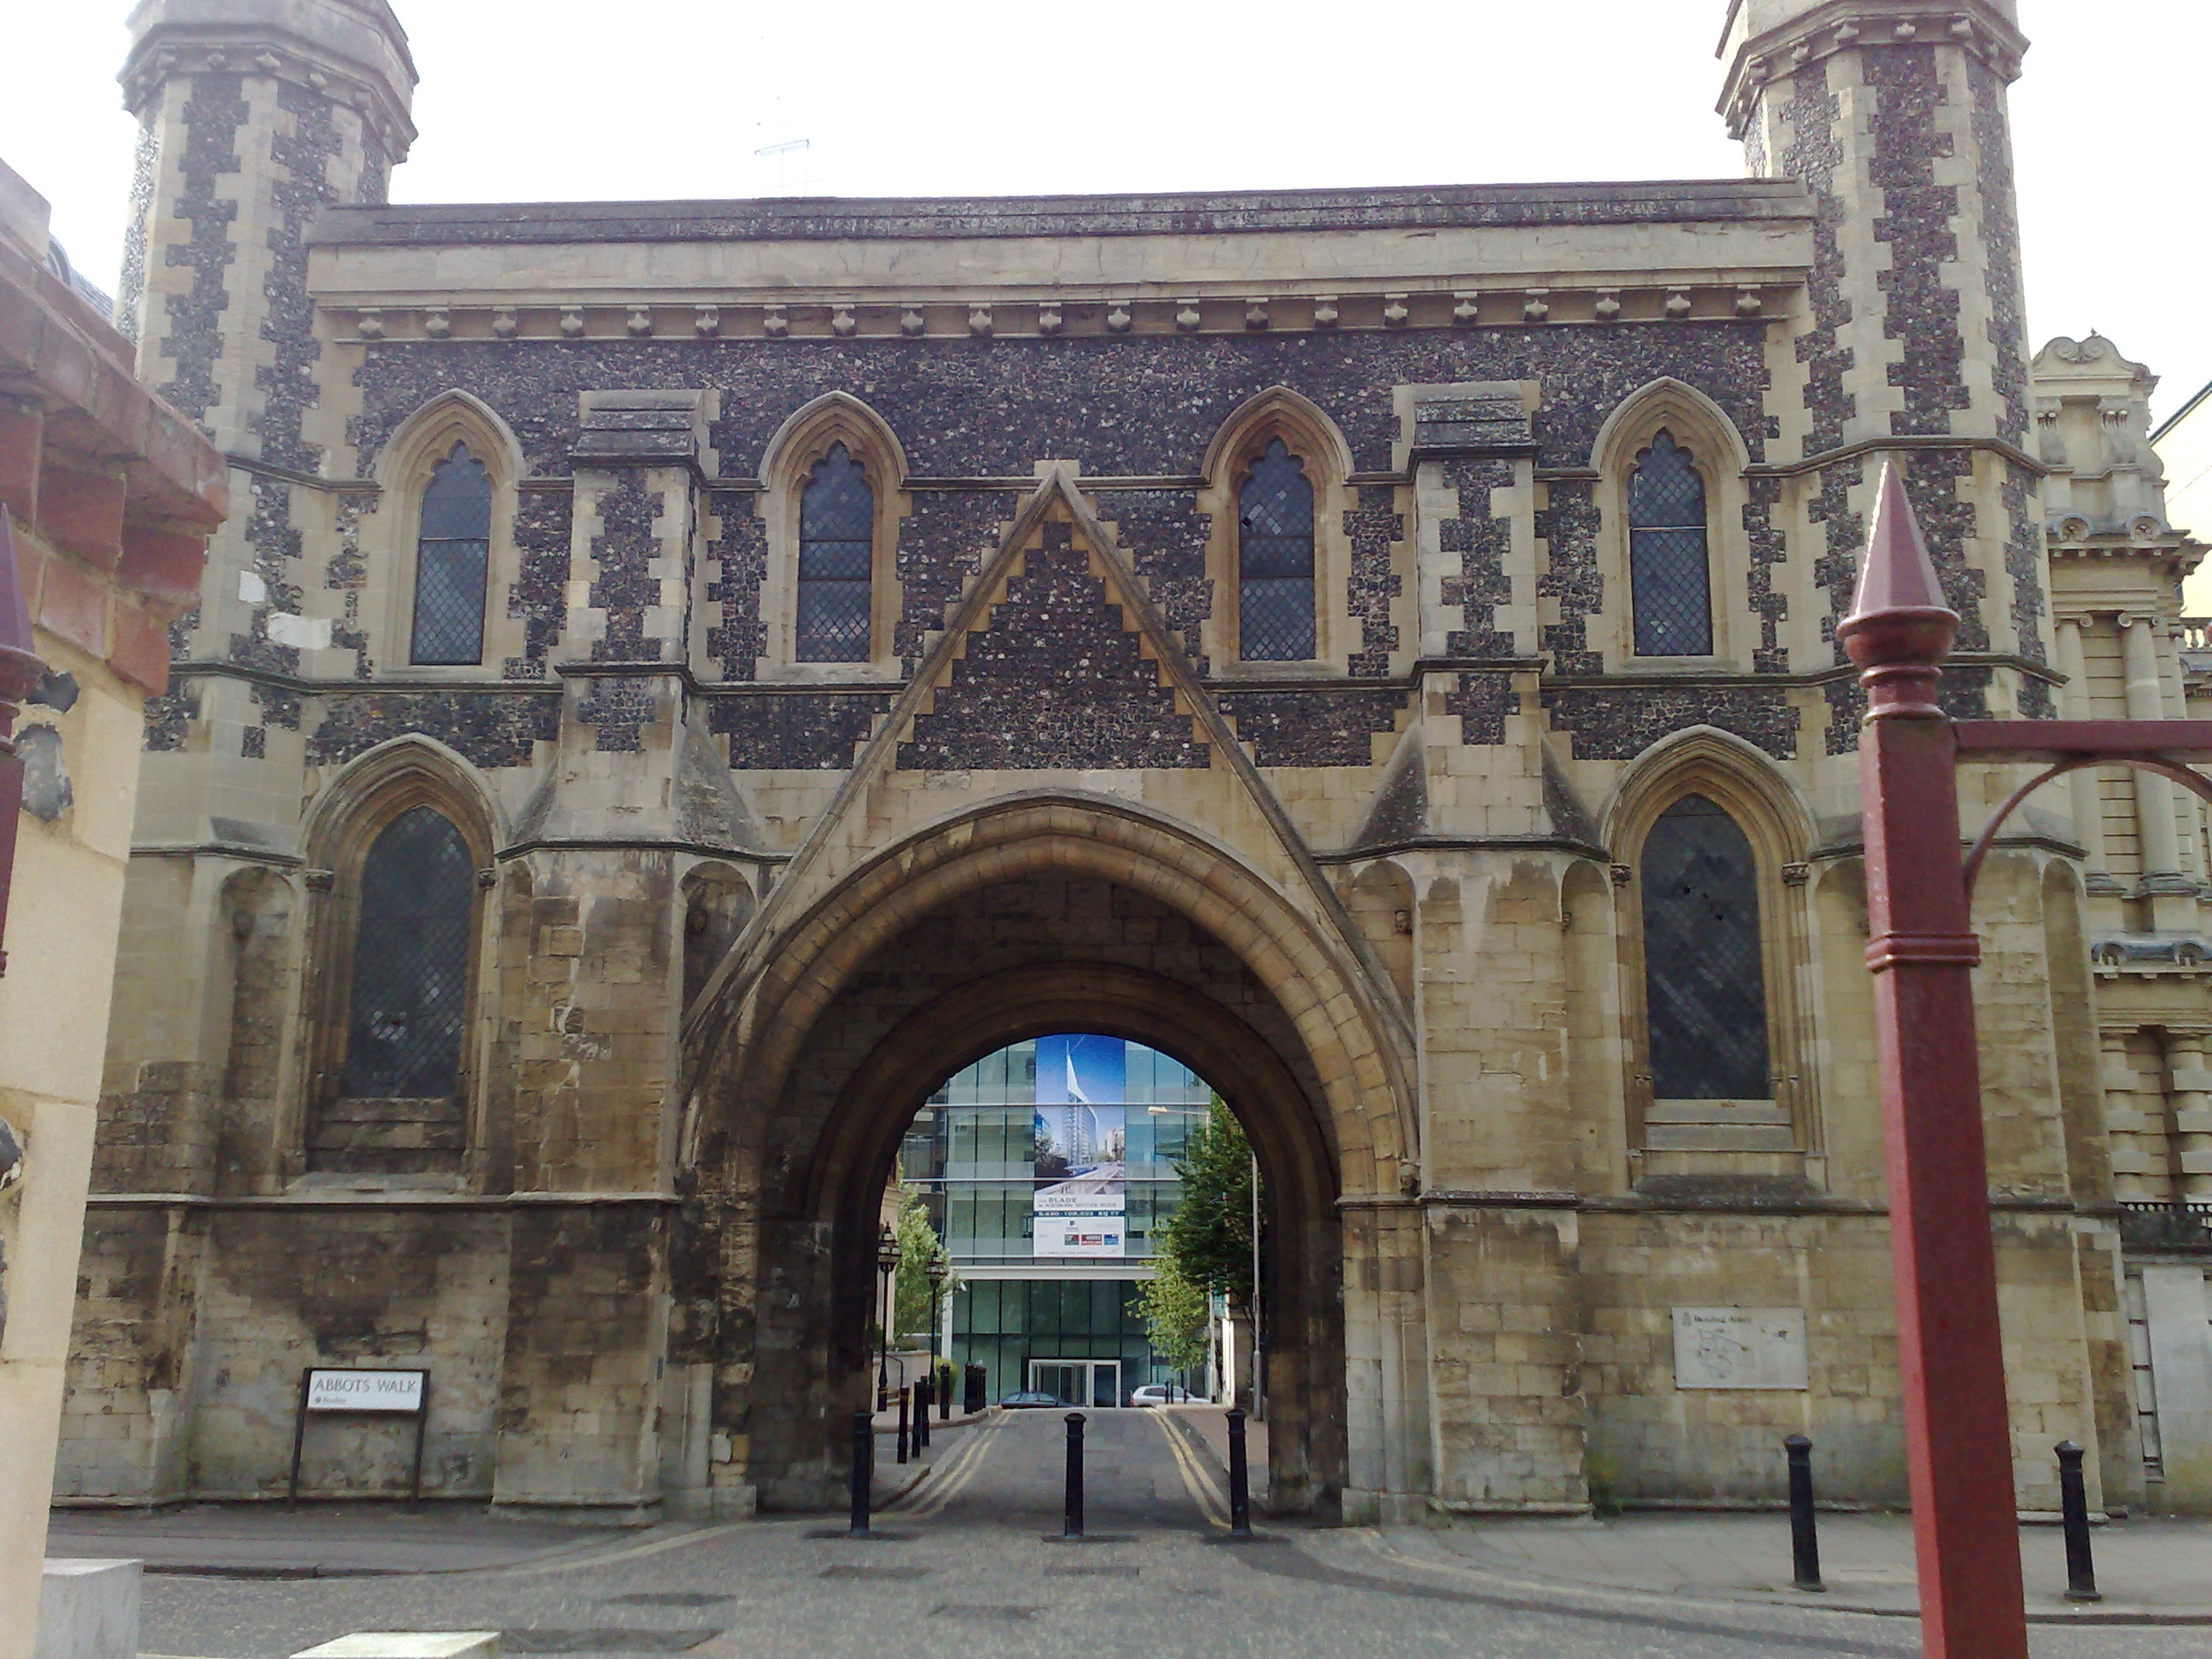 The former entrance to Reading Abbey also remains standing